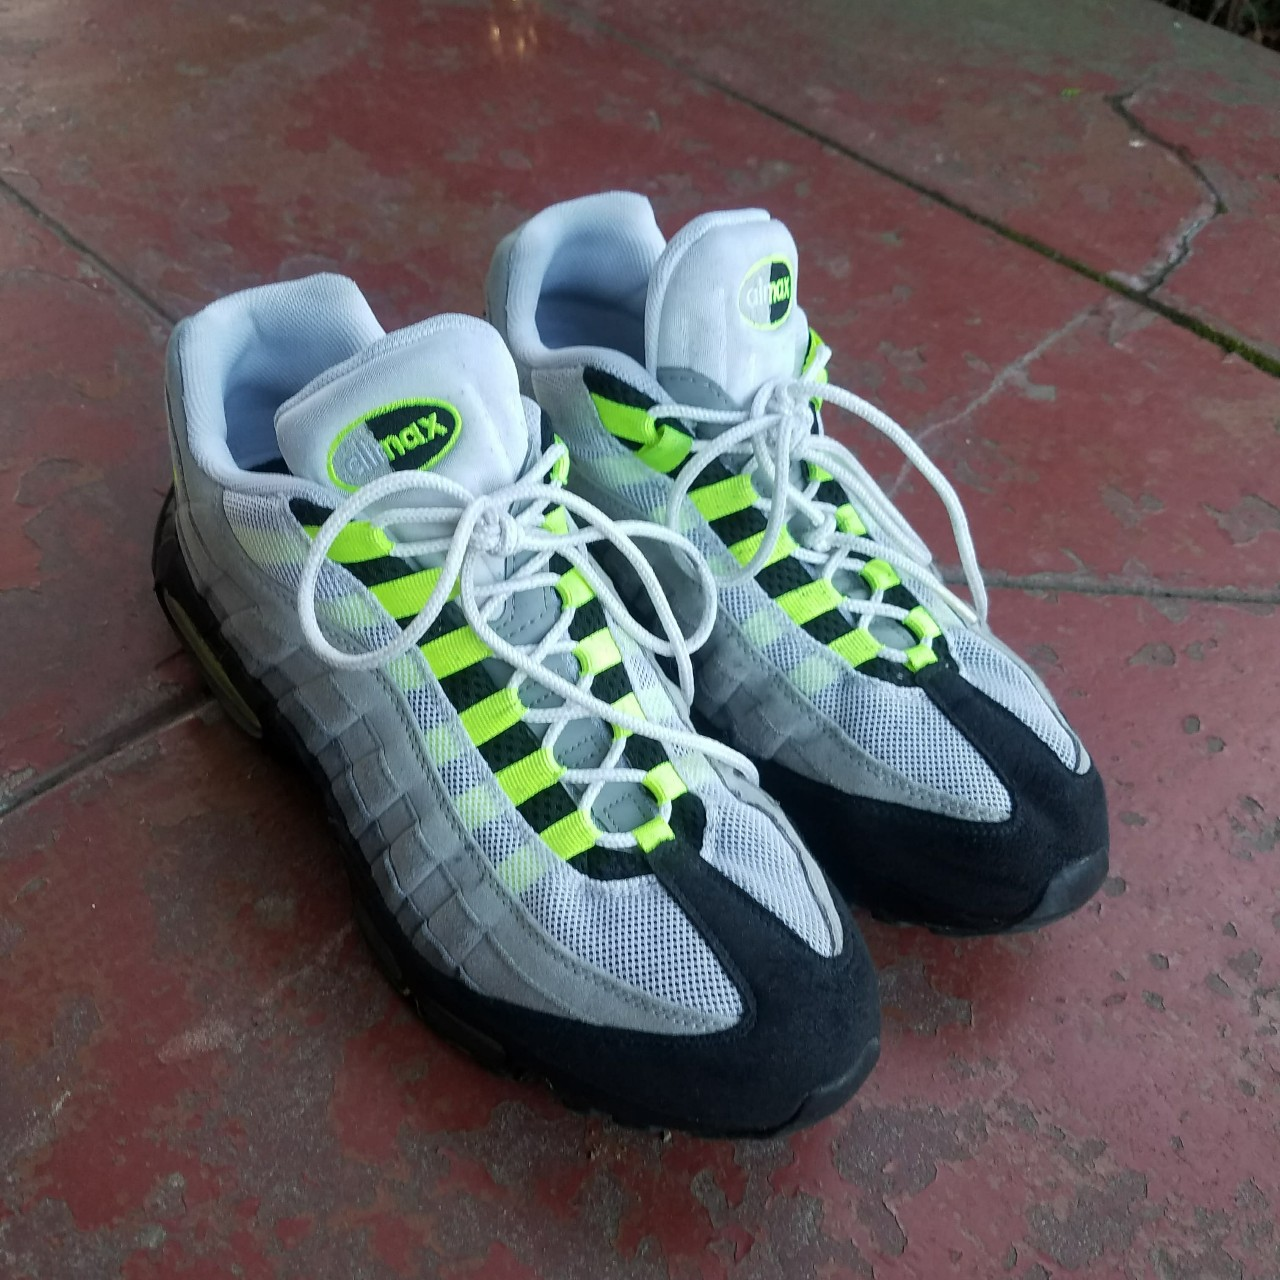 Nike Air max 95 neon green and gray Good condition Depop